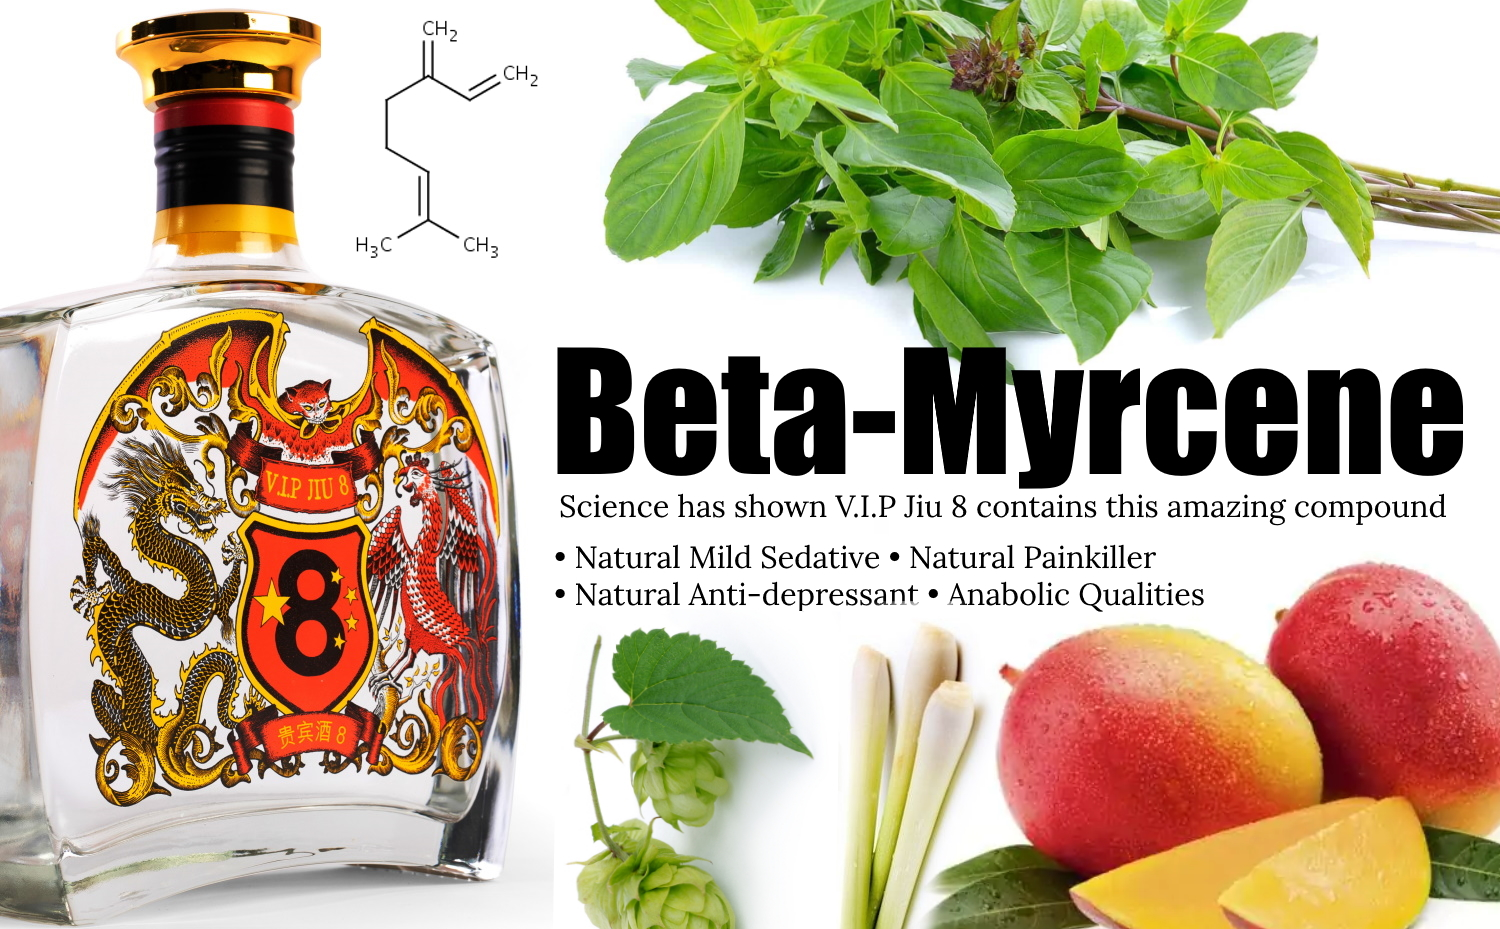 Baijiu Health Benefits? V.I.P Jiu 8 And Beta-Myrcene – Terpene